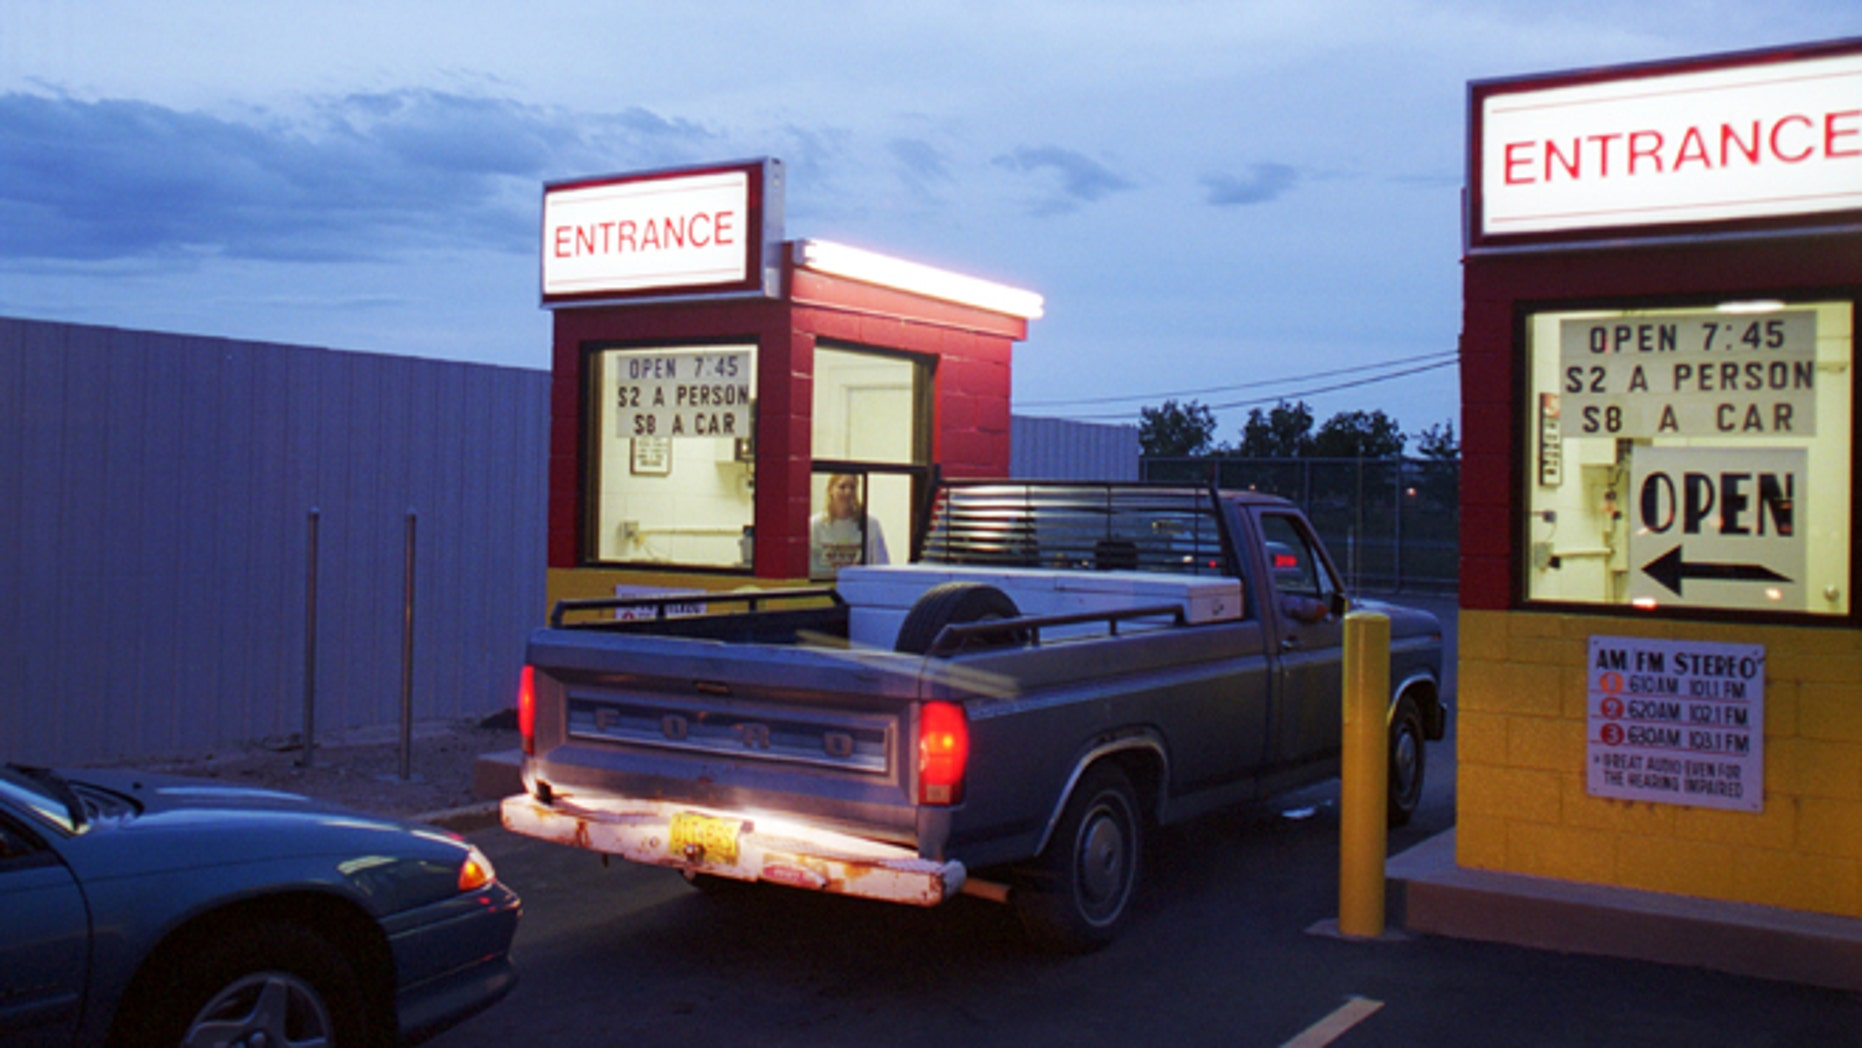 Cars and pickup trucks enter the Fiesta drive-in movie theater August 10, 2000 in Carlsbad, New Mexico. (Photo by Joe Raedle/Newsmakers)